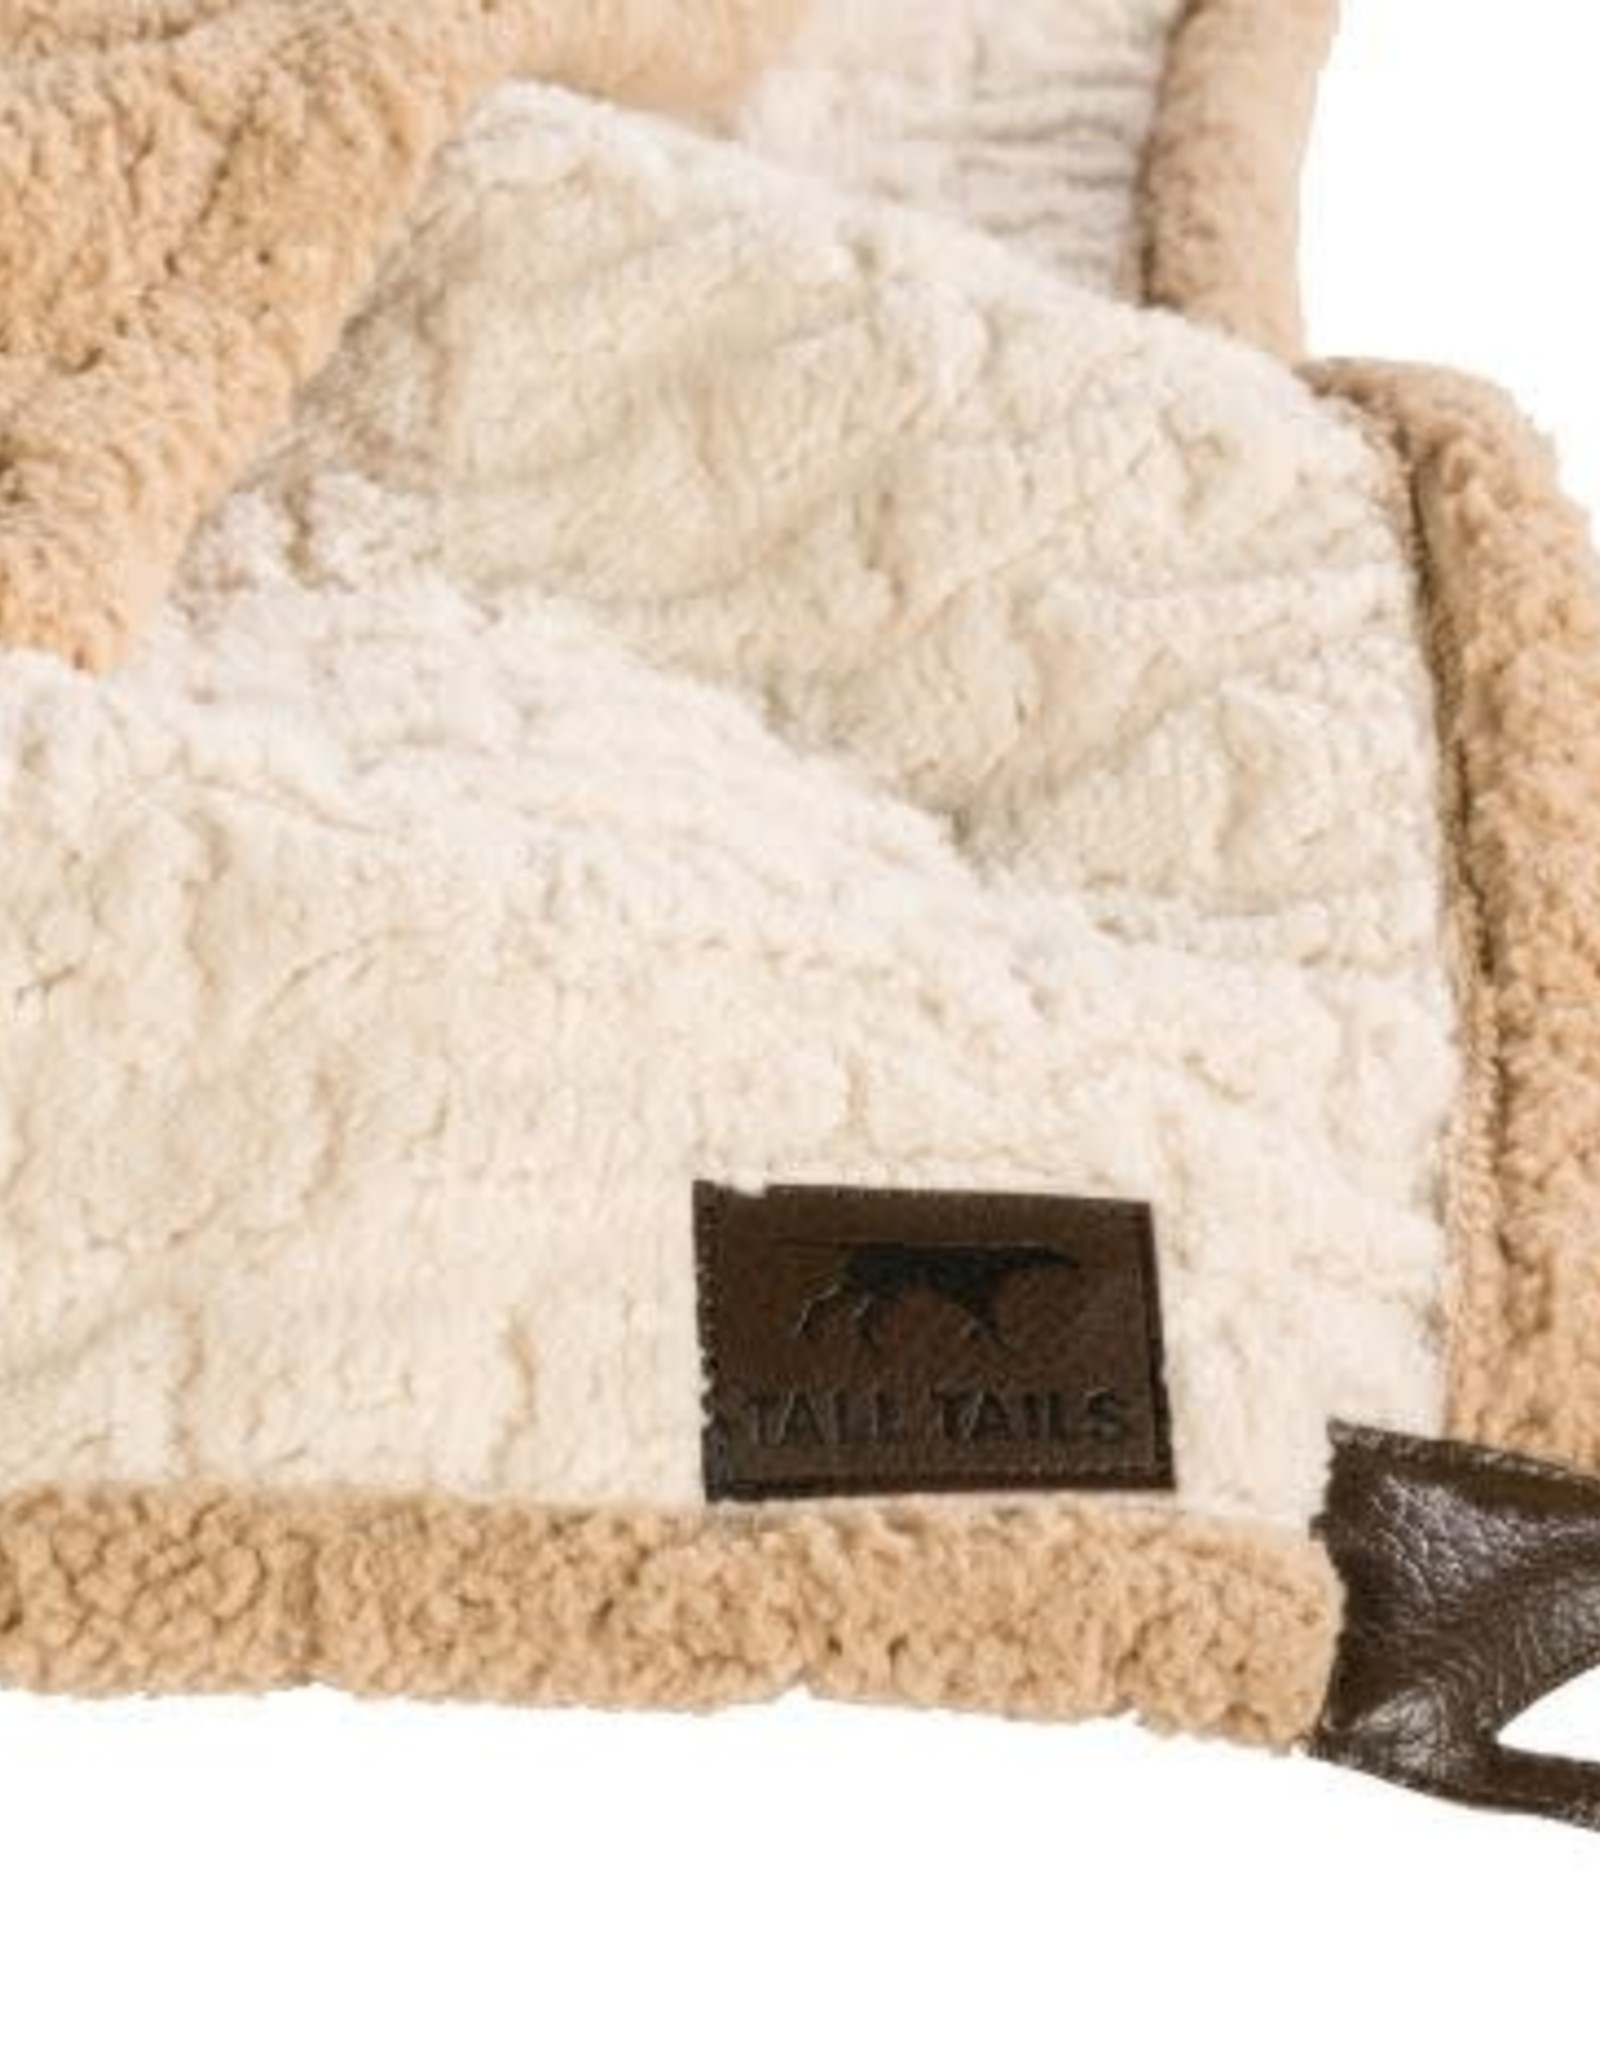 Tall Tails Tall Tails Sherpa Dog Blanket 30x40